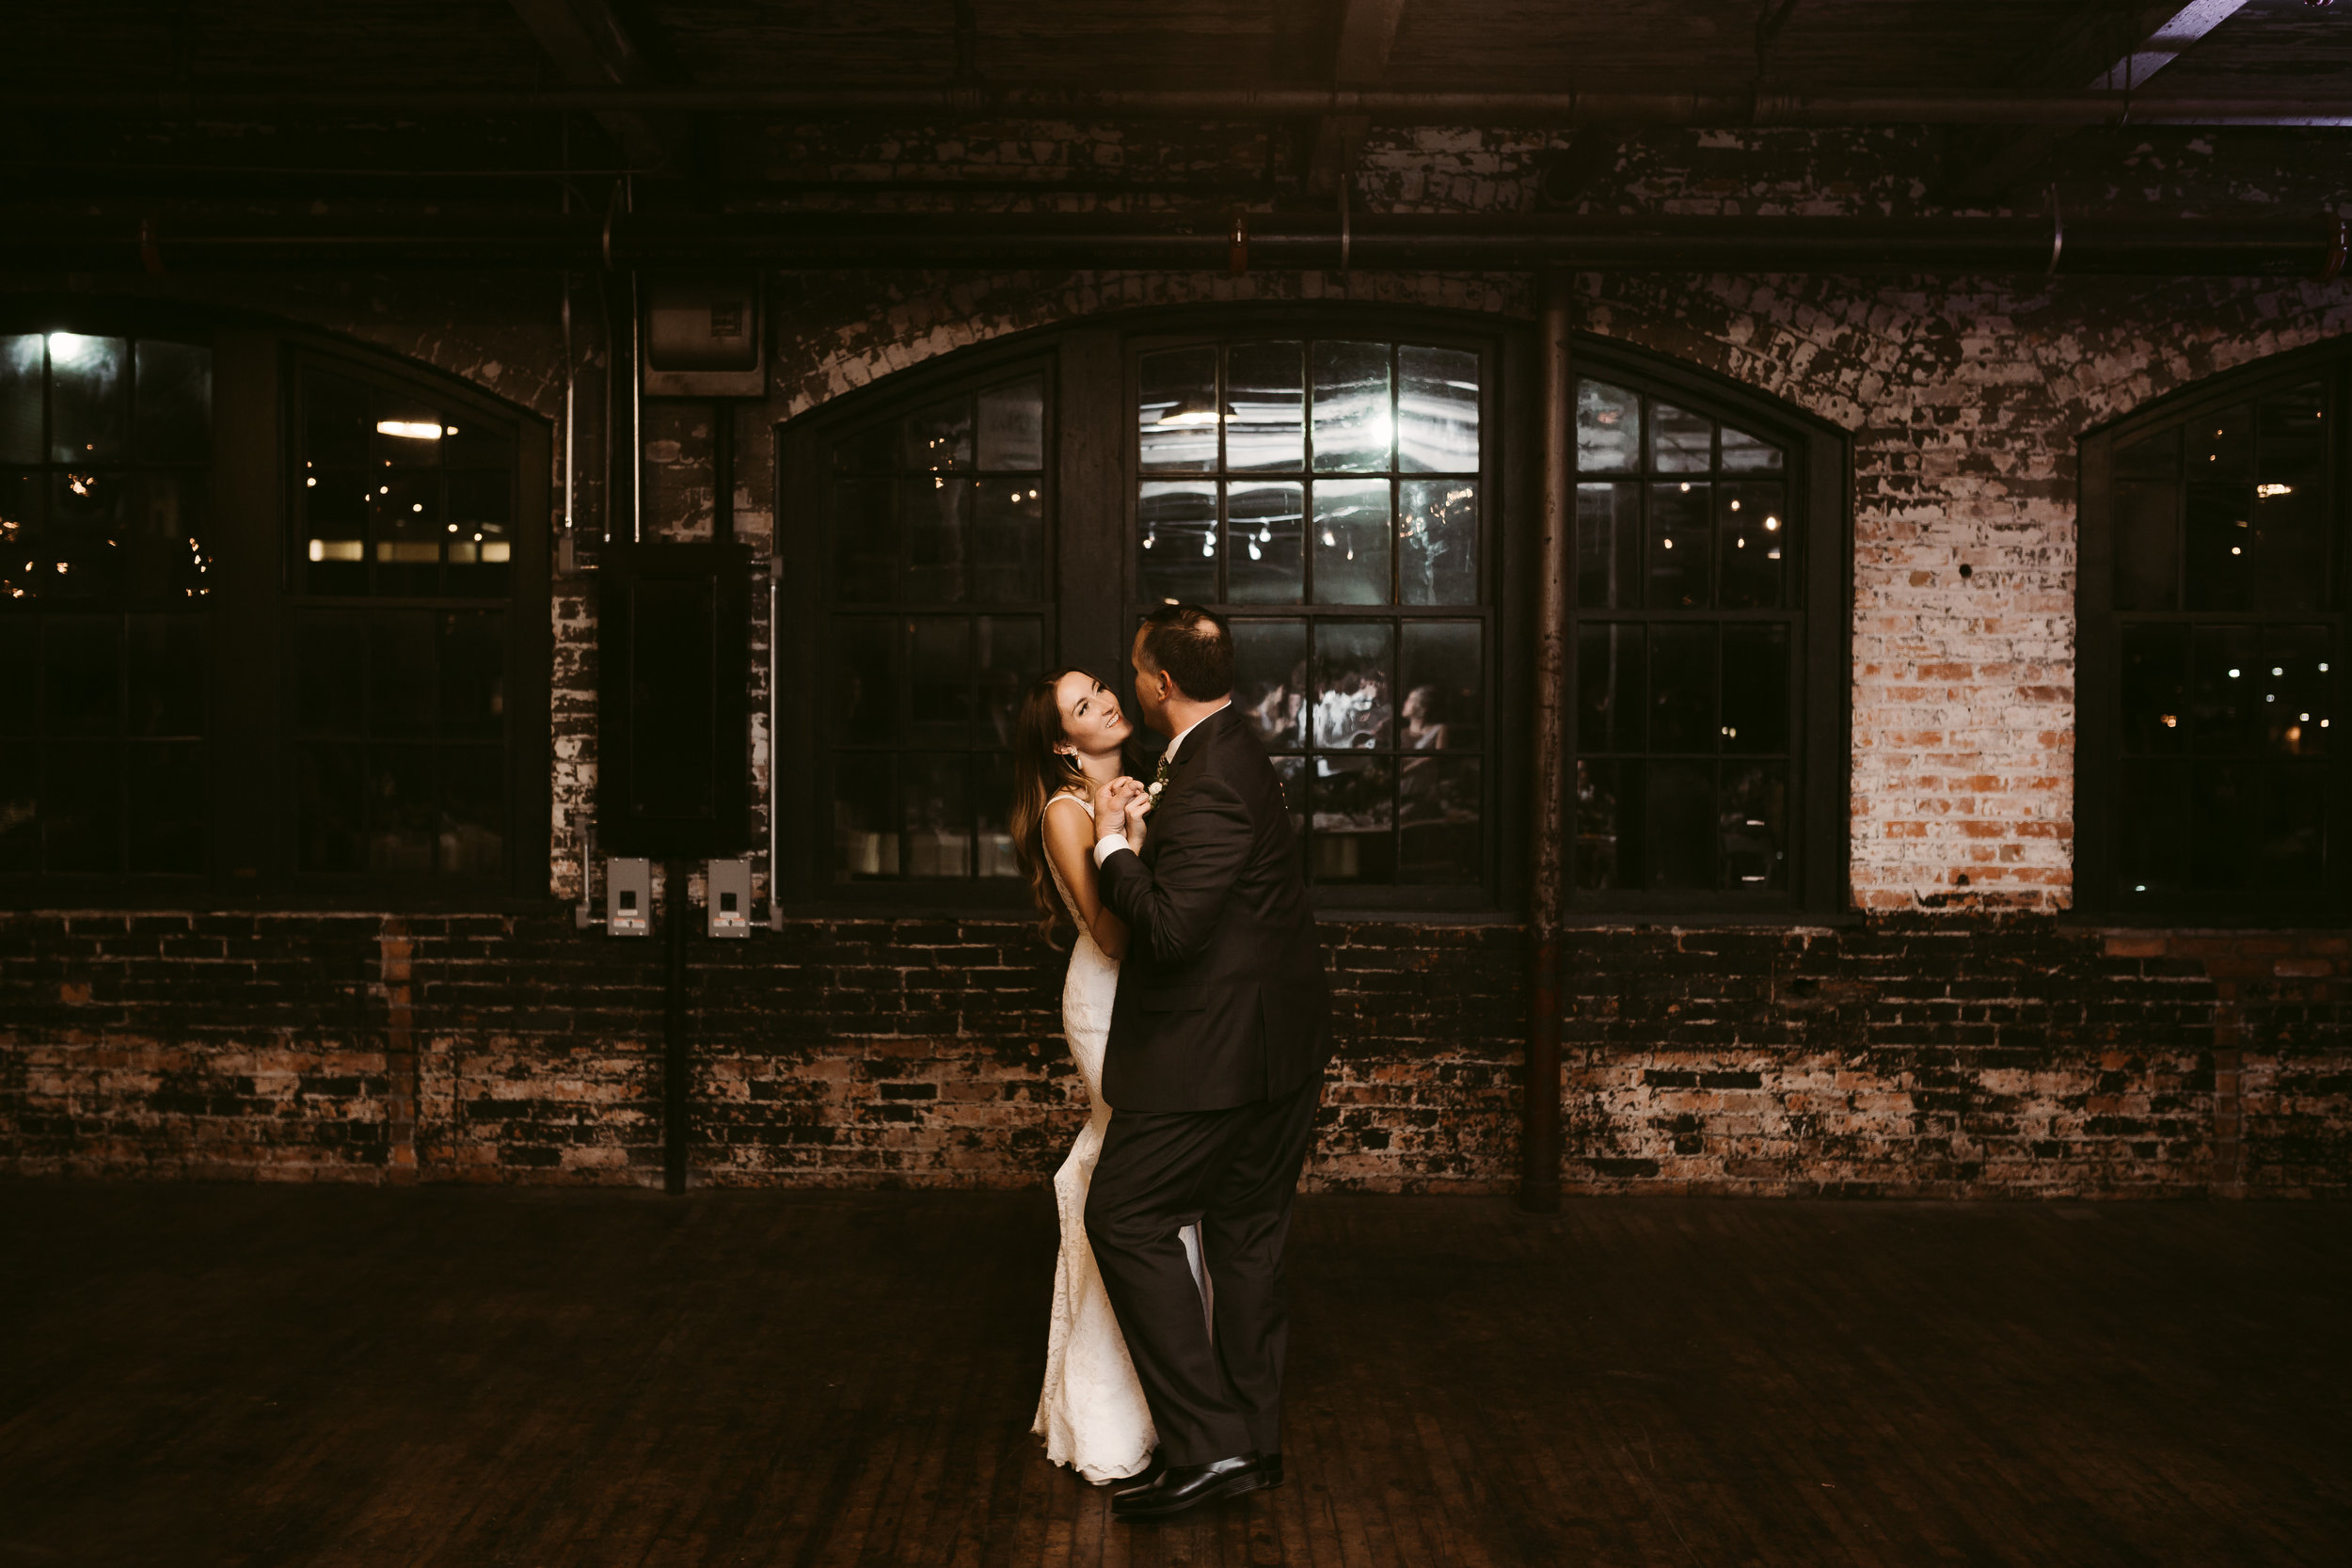 Katie_Vonasek_Photography_Ford_Piquette_Plant_Wedding_Detroit106.JPG